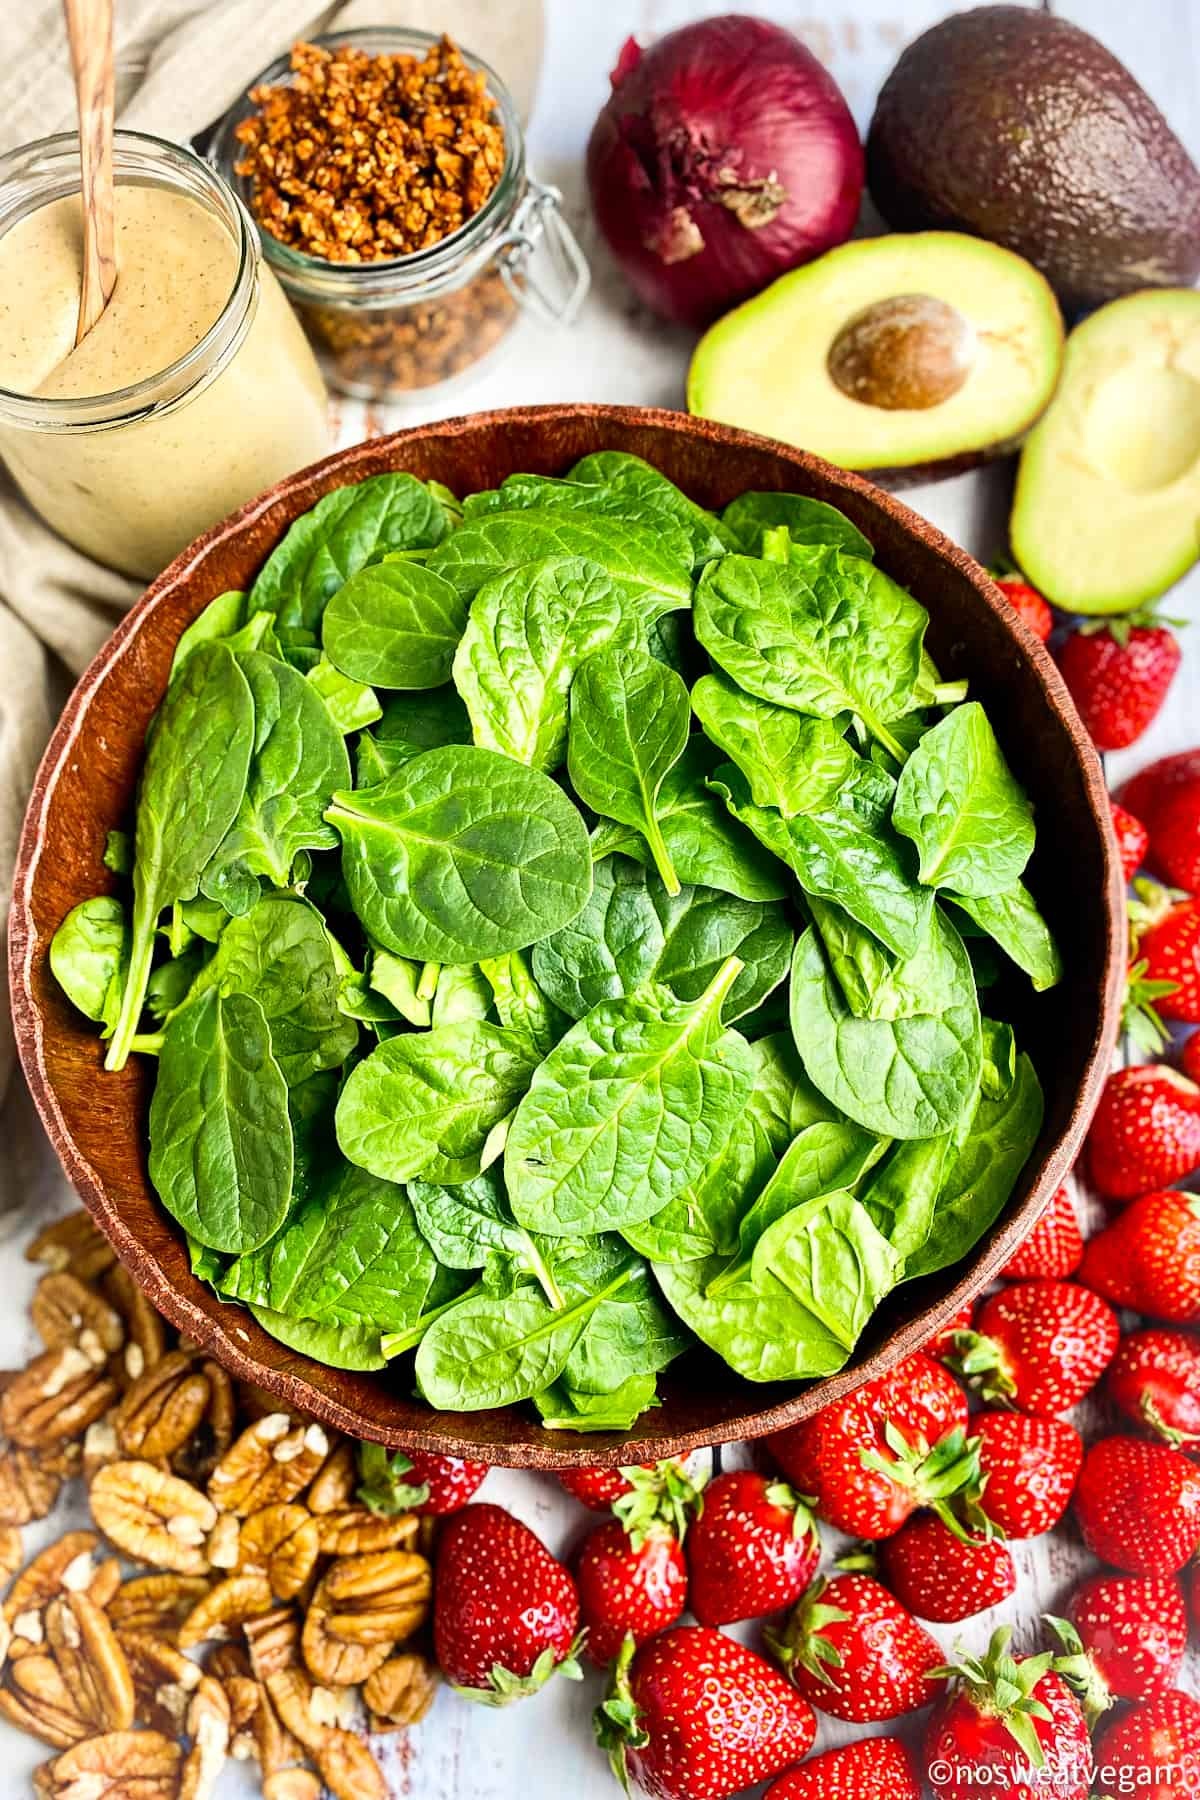 Ingredients for spinach salad with strawberries, avocado, red onion, pecans, vegan bacon bits, and creamy balsamic dressing.